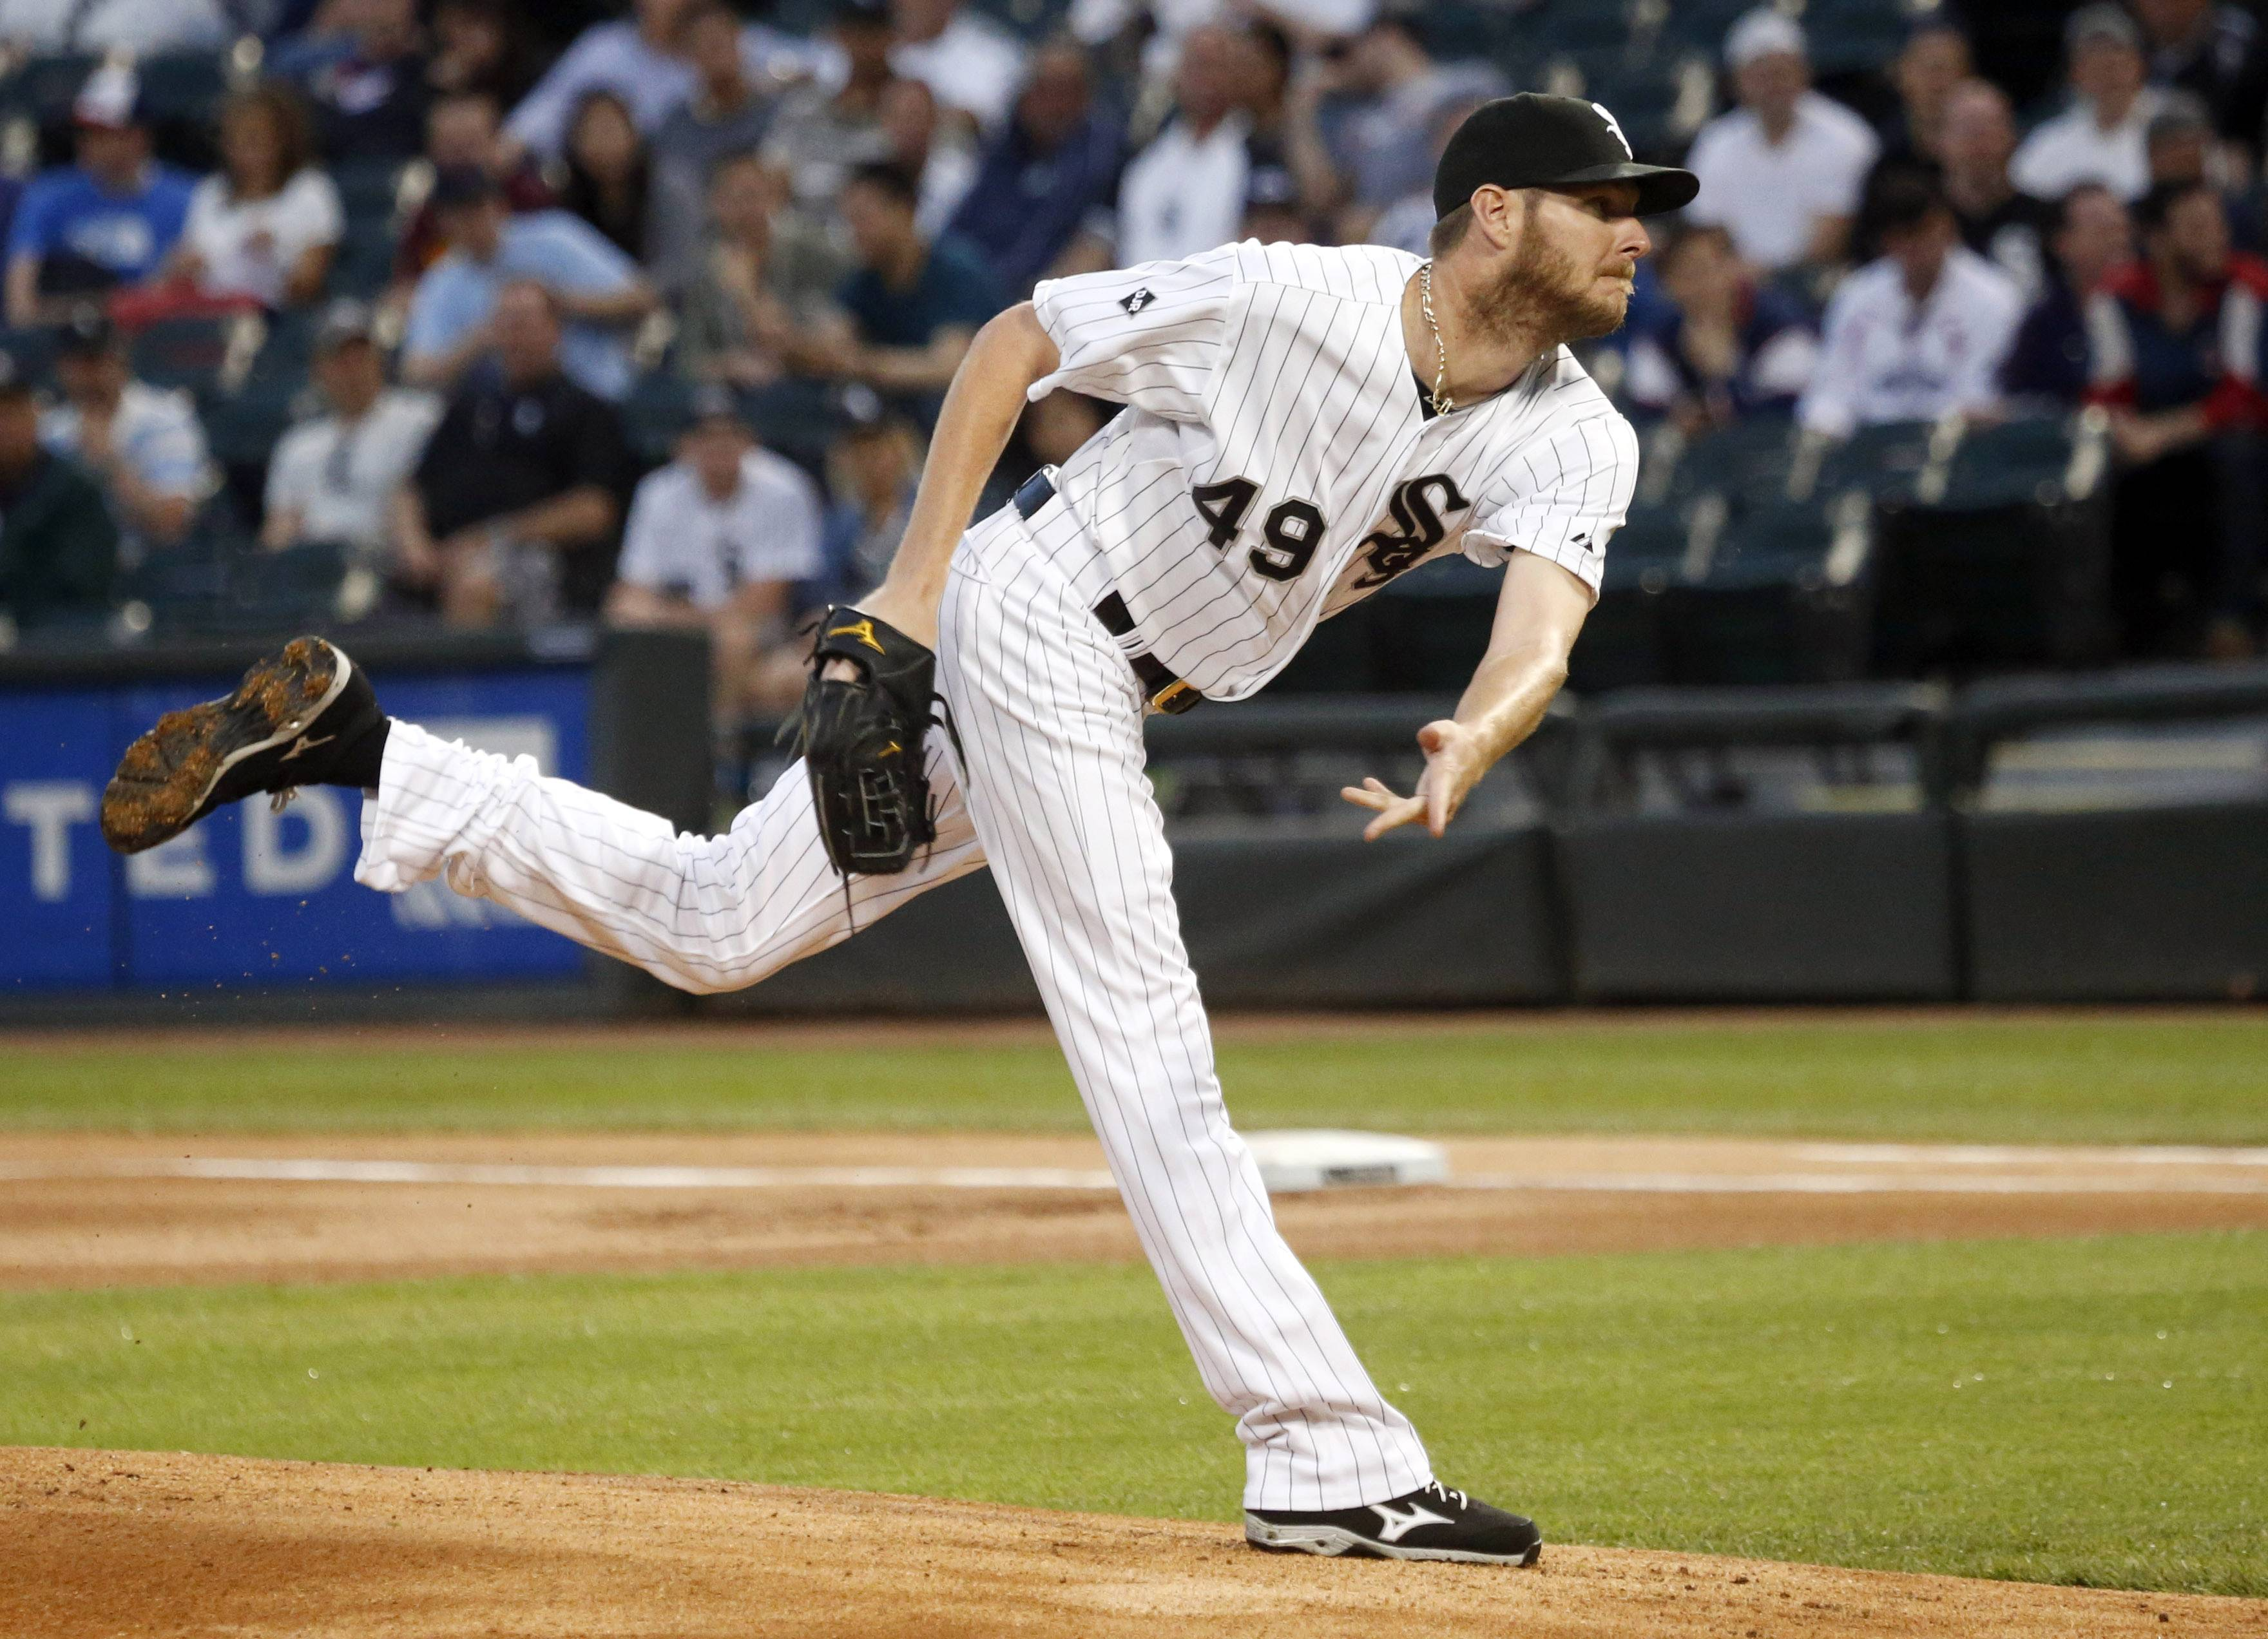 Chicago White Sox starting pitcher Chris Sale delivers during the first inning of a baseball game against the Cleveland Indians, Tuesday, May 27, 2014, in Chicago. (AP Photo/Charles Rex Arbogast)